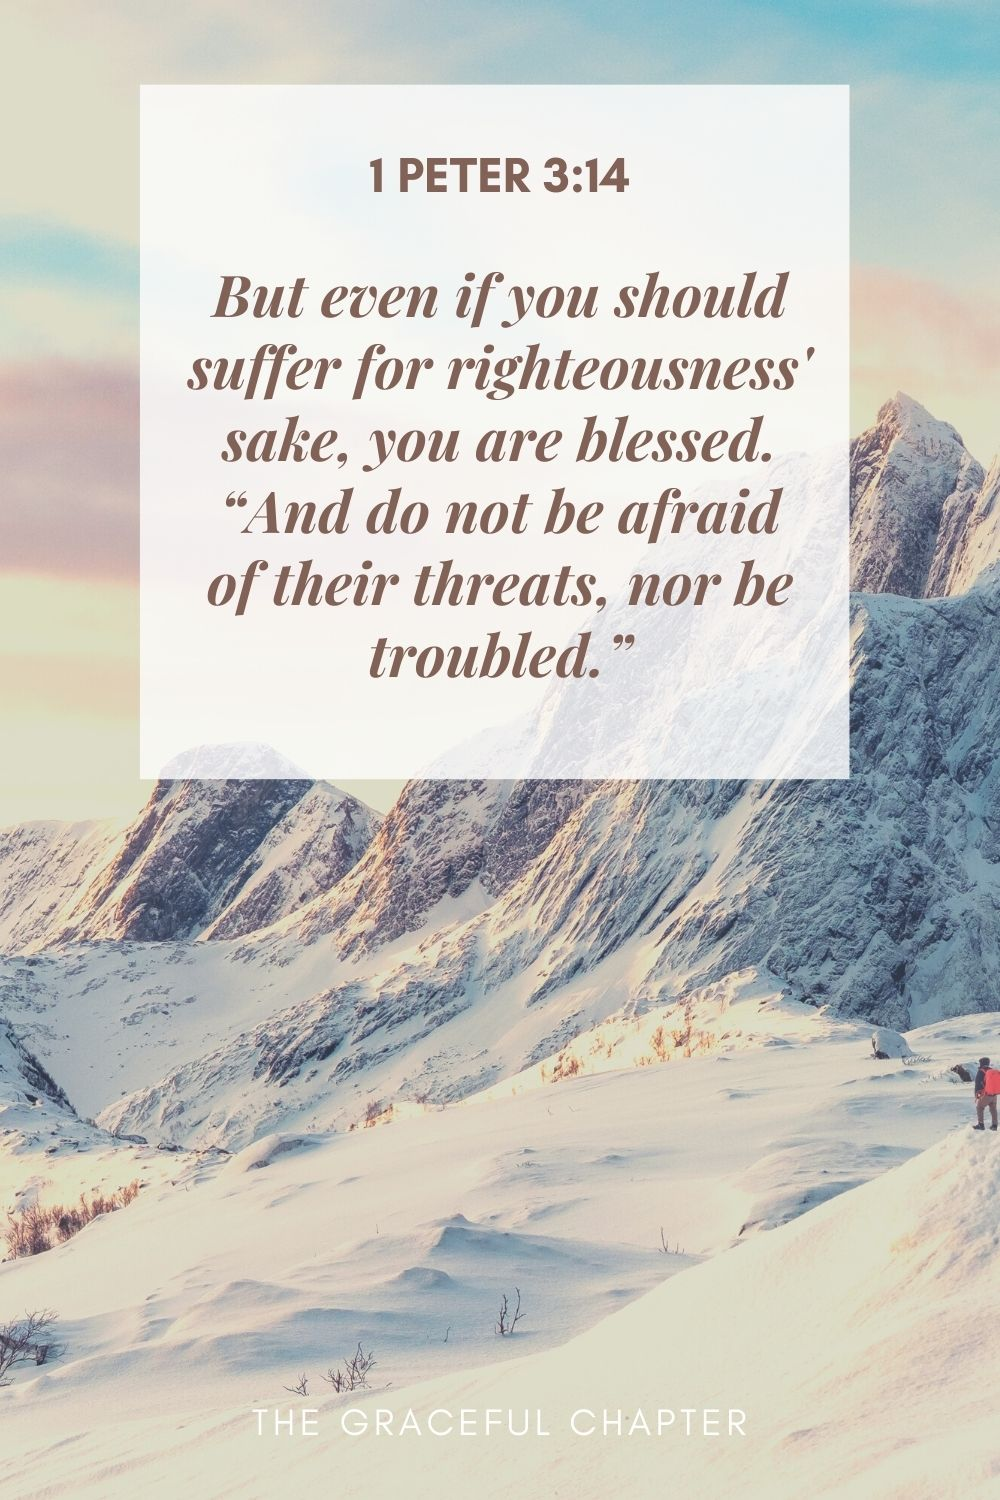 """But even if you should suffer for righteousness' sake, you are blessed. """"And do not be afraid of their threats, nor be troubled."""" 1 Peter 3:14"""